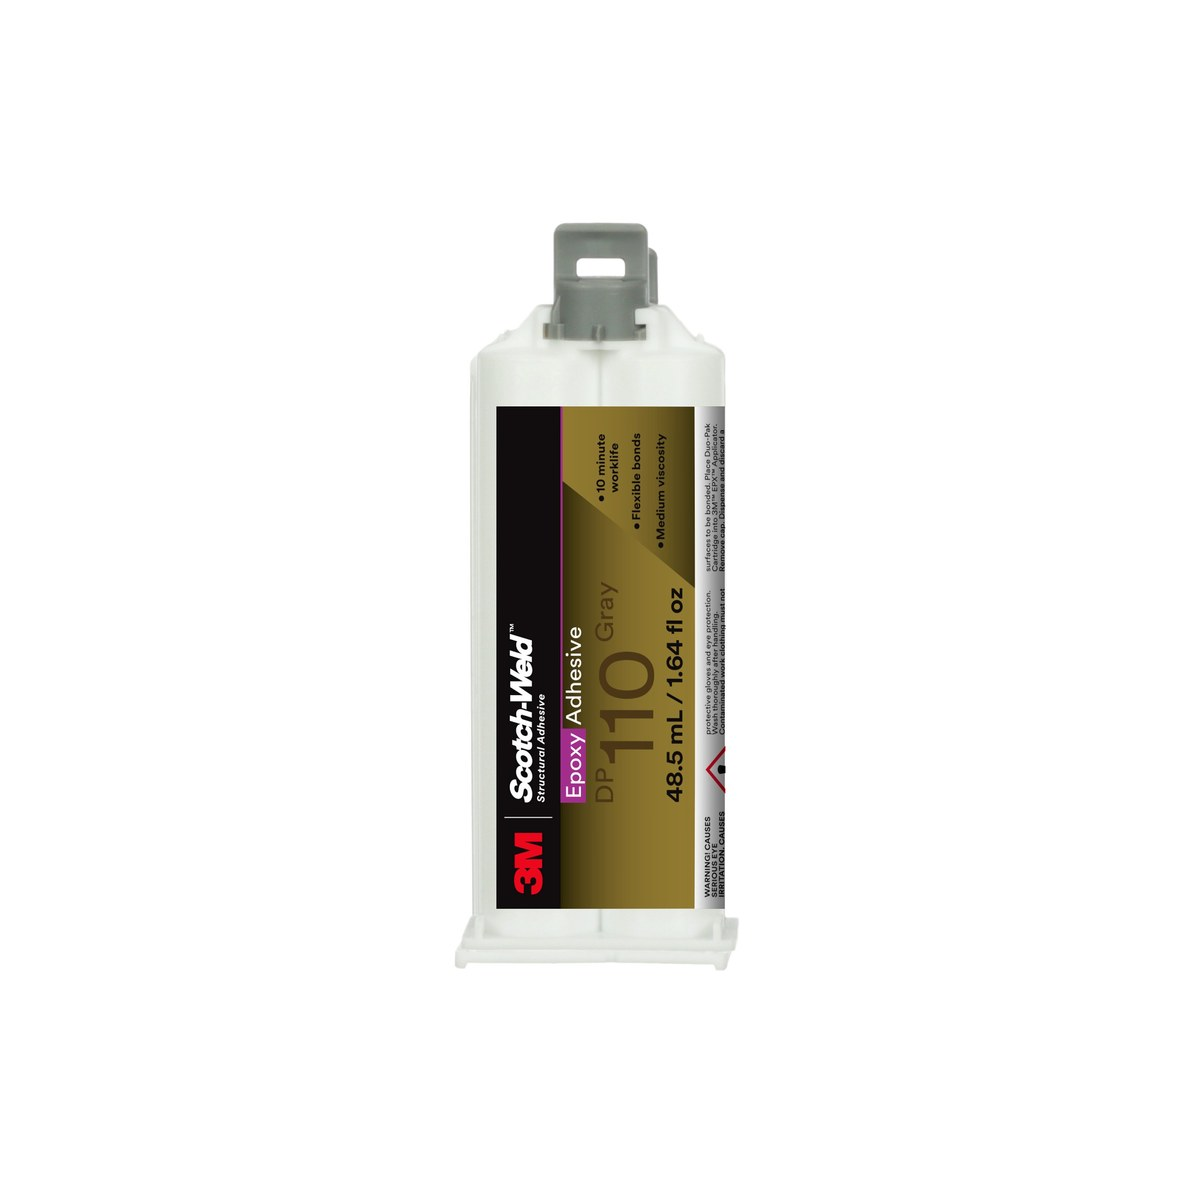 3M Scotch-Weld DP110 Epoxy Adhesive 08990, 48 5 ml Cartridge